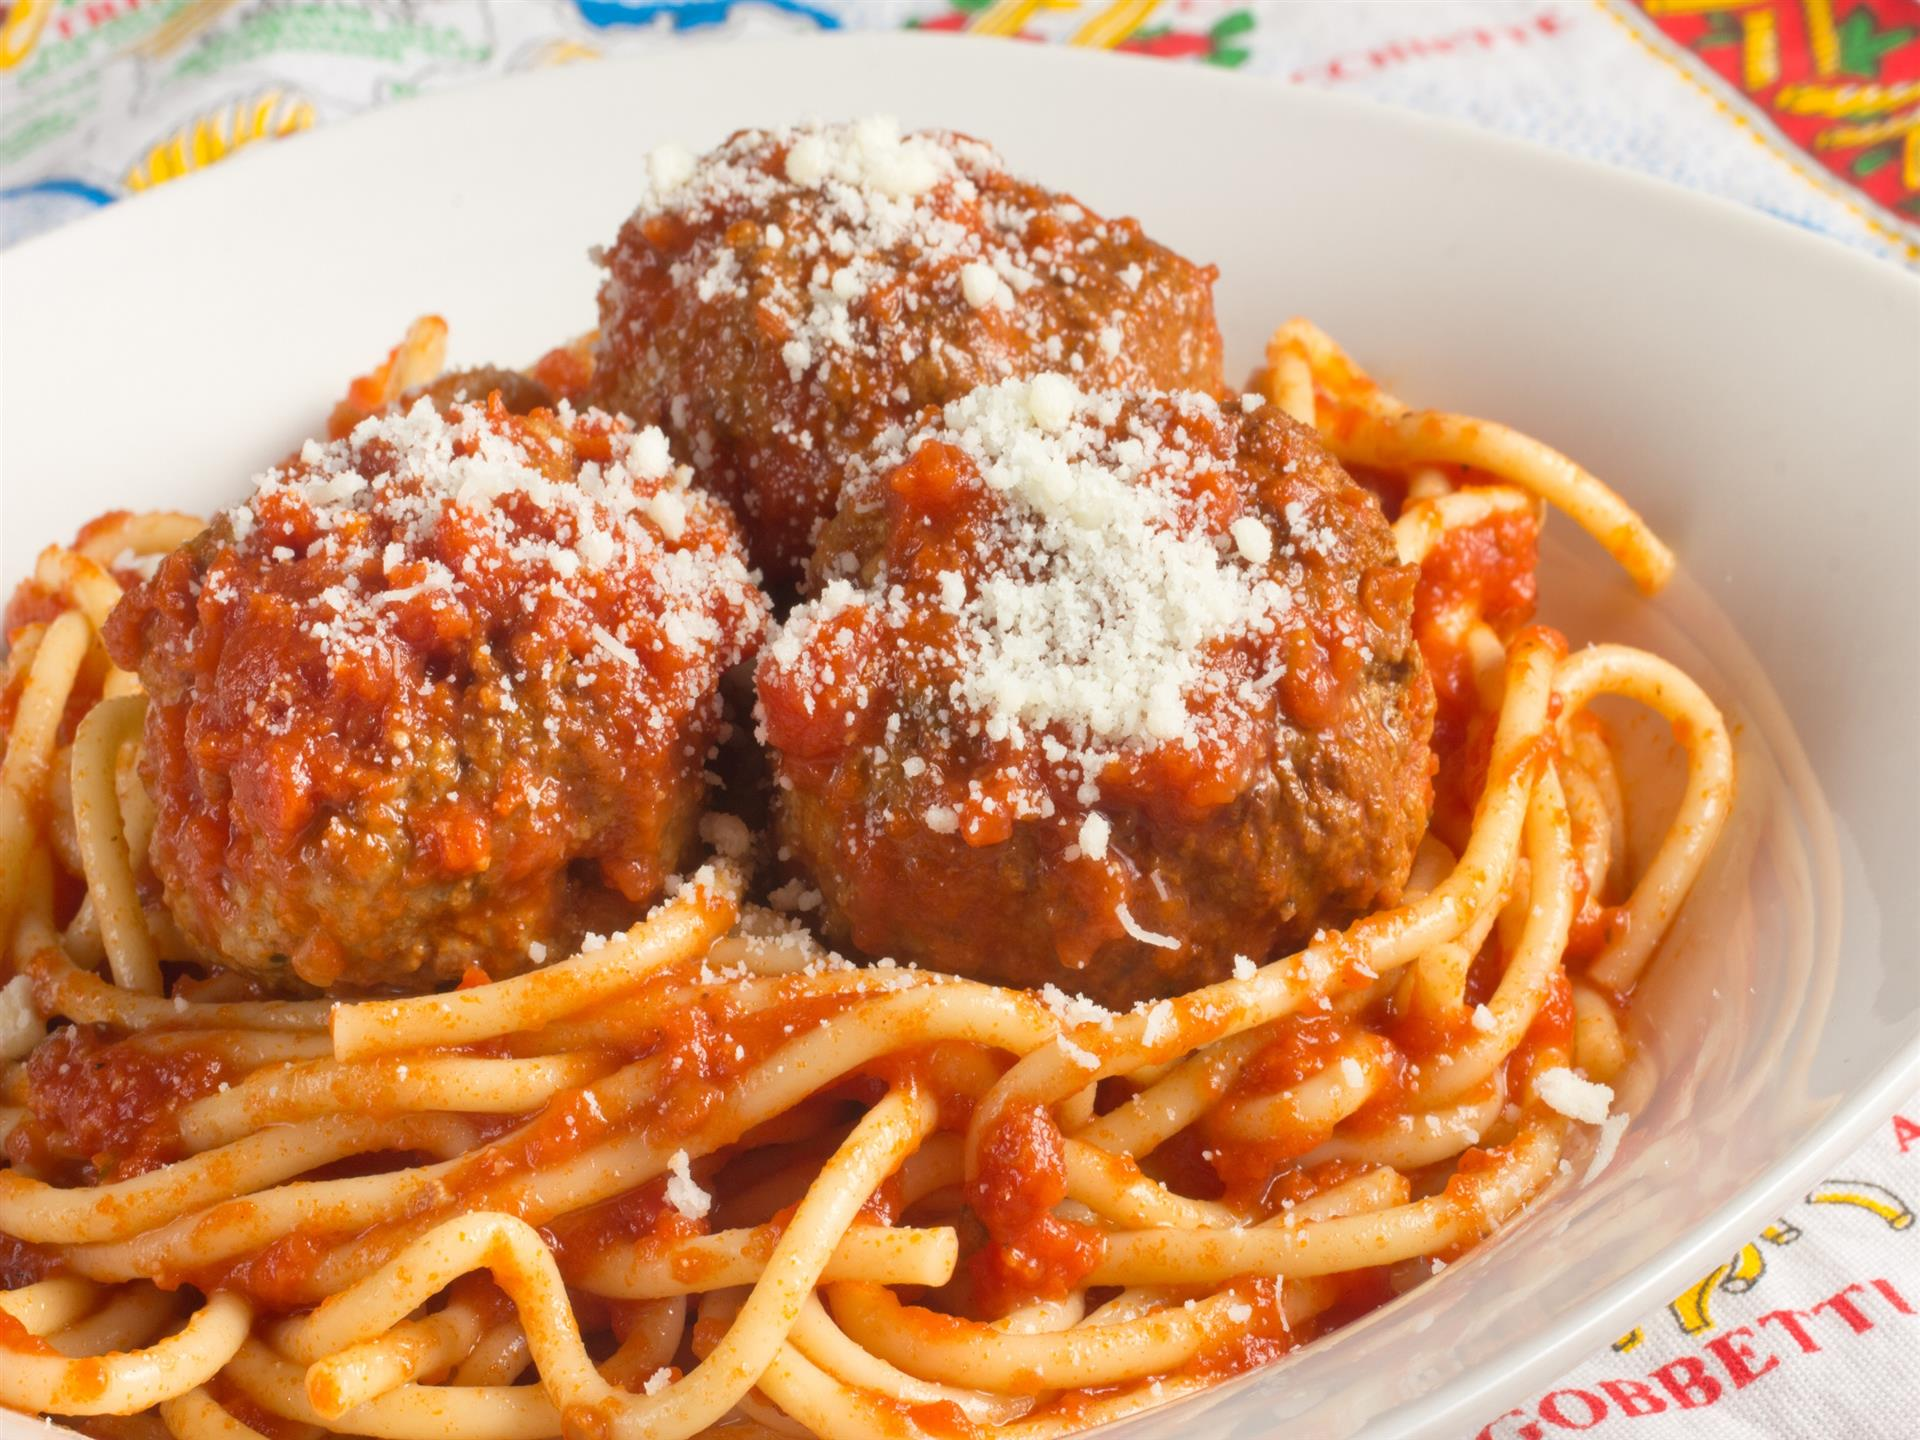 spaghetti and meatballs with grated cheese